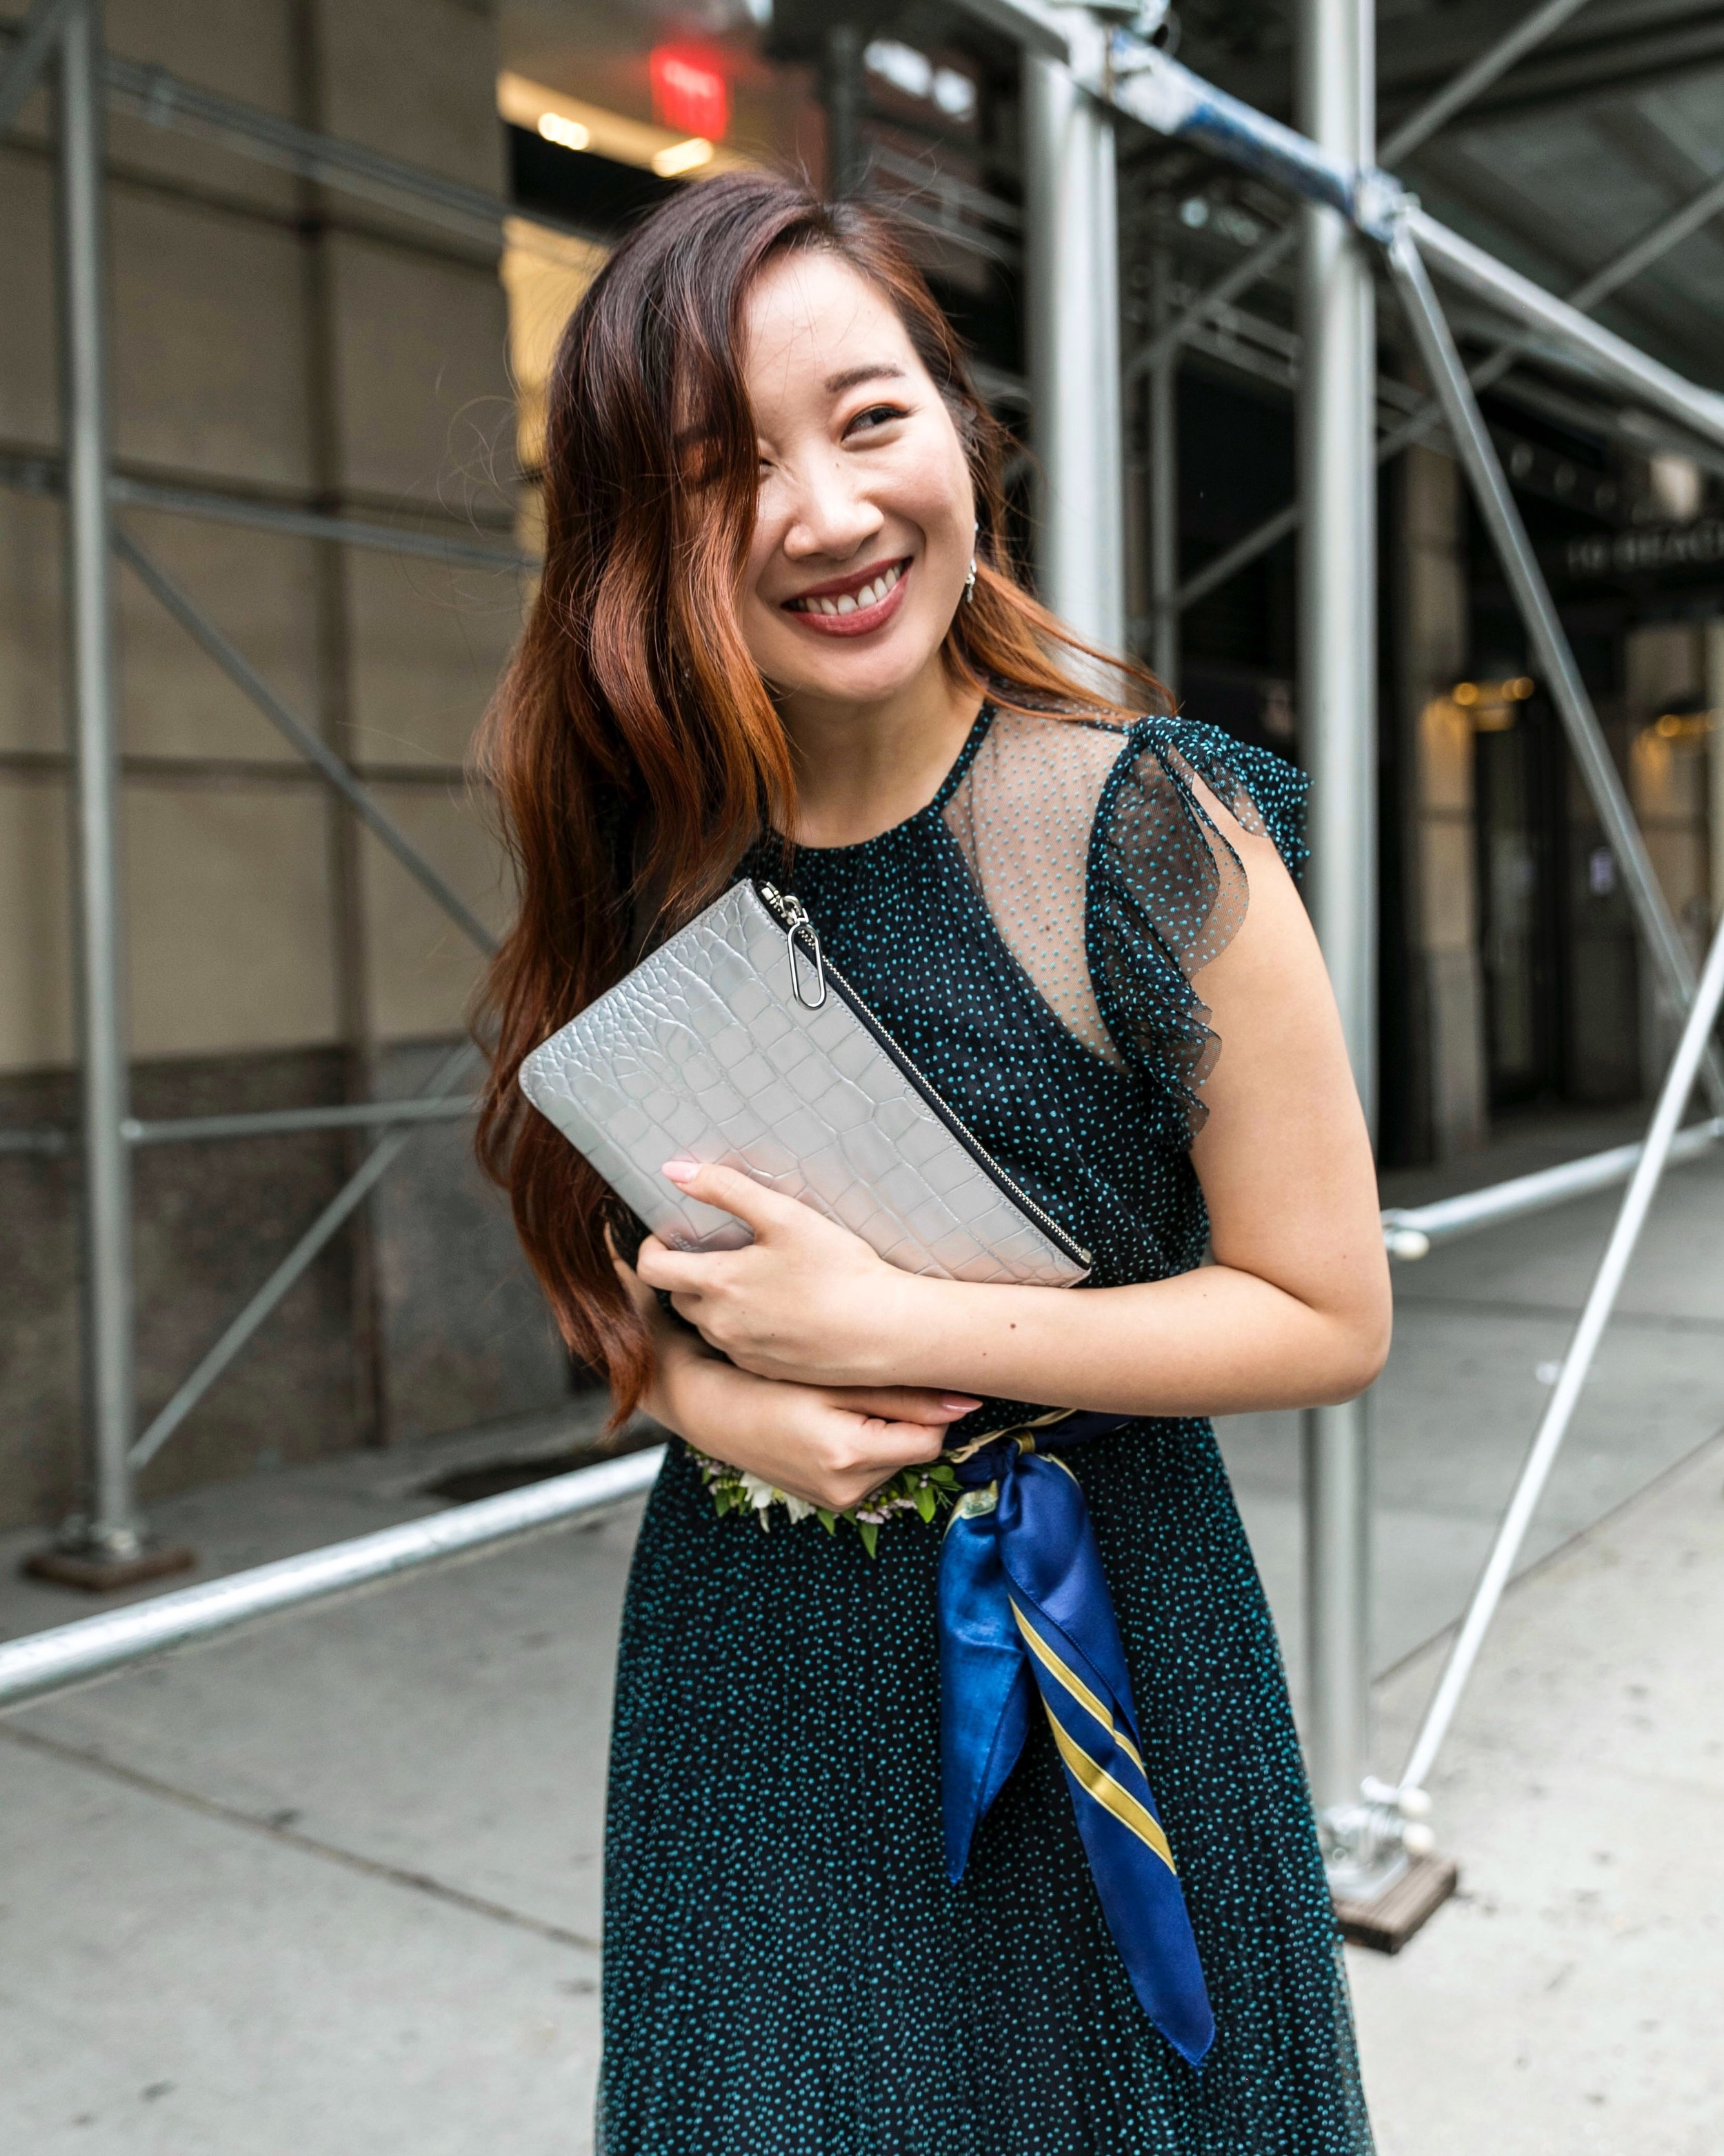 Use  happilyeverstyle15  to get 15% off your  Jeff Wan  bag. Photos by Ashley Gallerani.